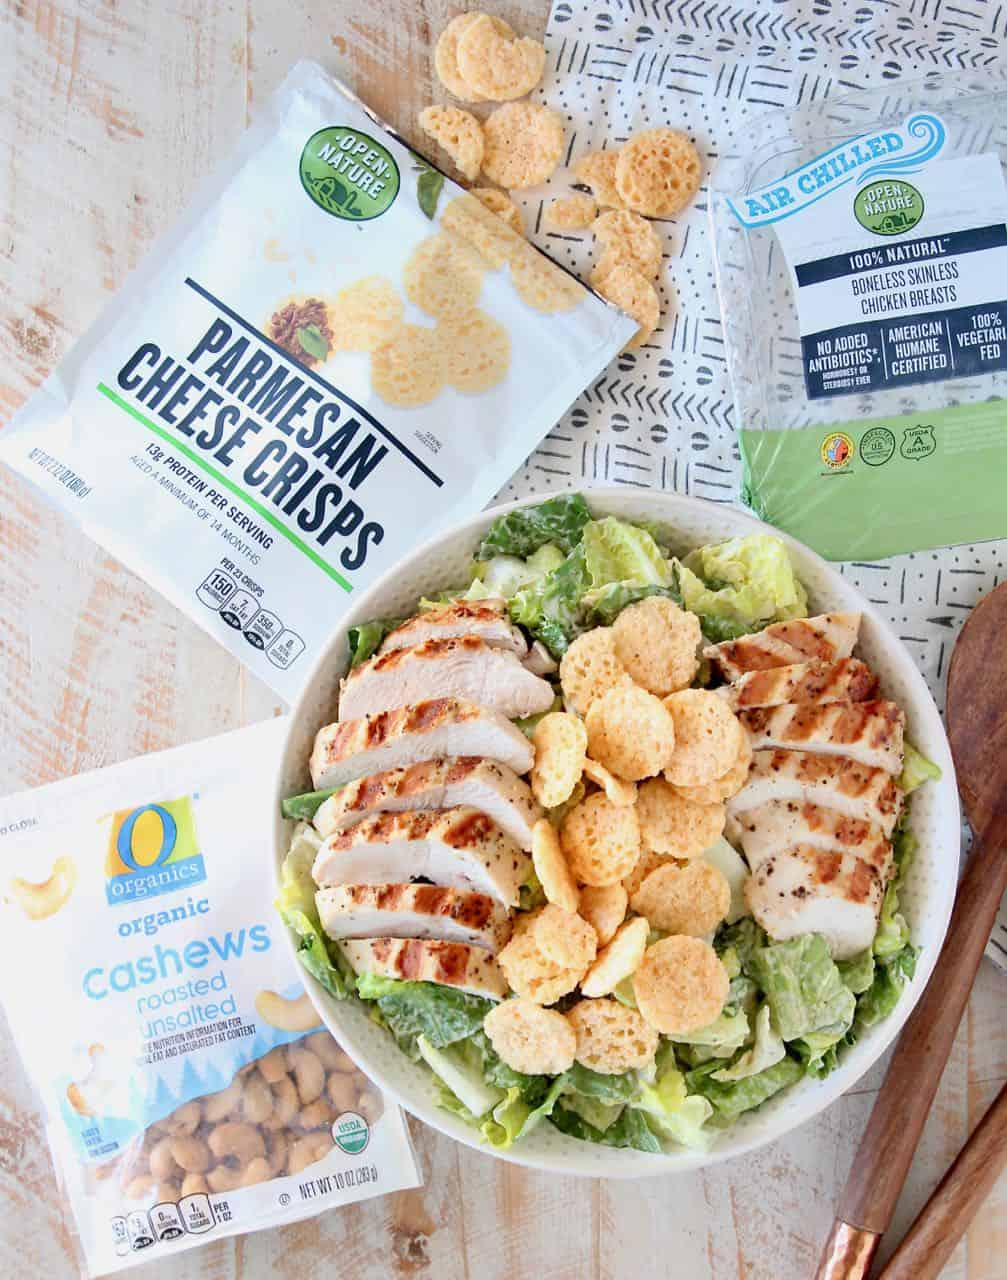 Grilled chicken caesar salad in bowl topped with parmesan cheese crisps